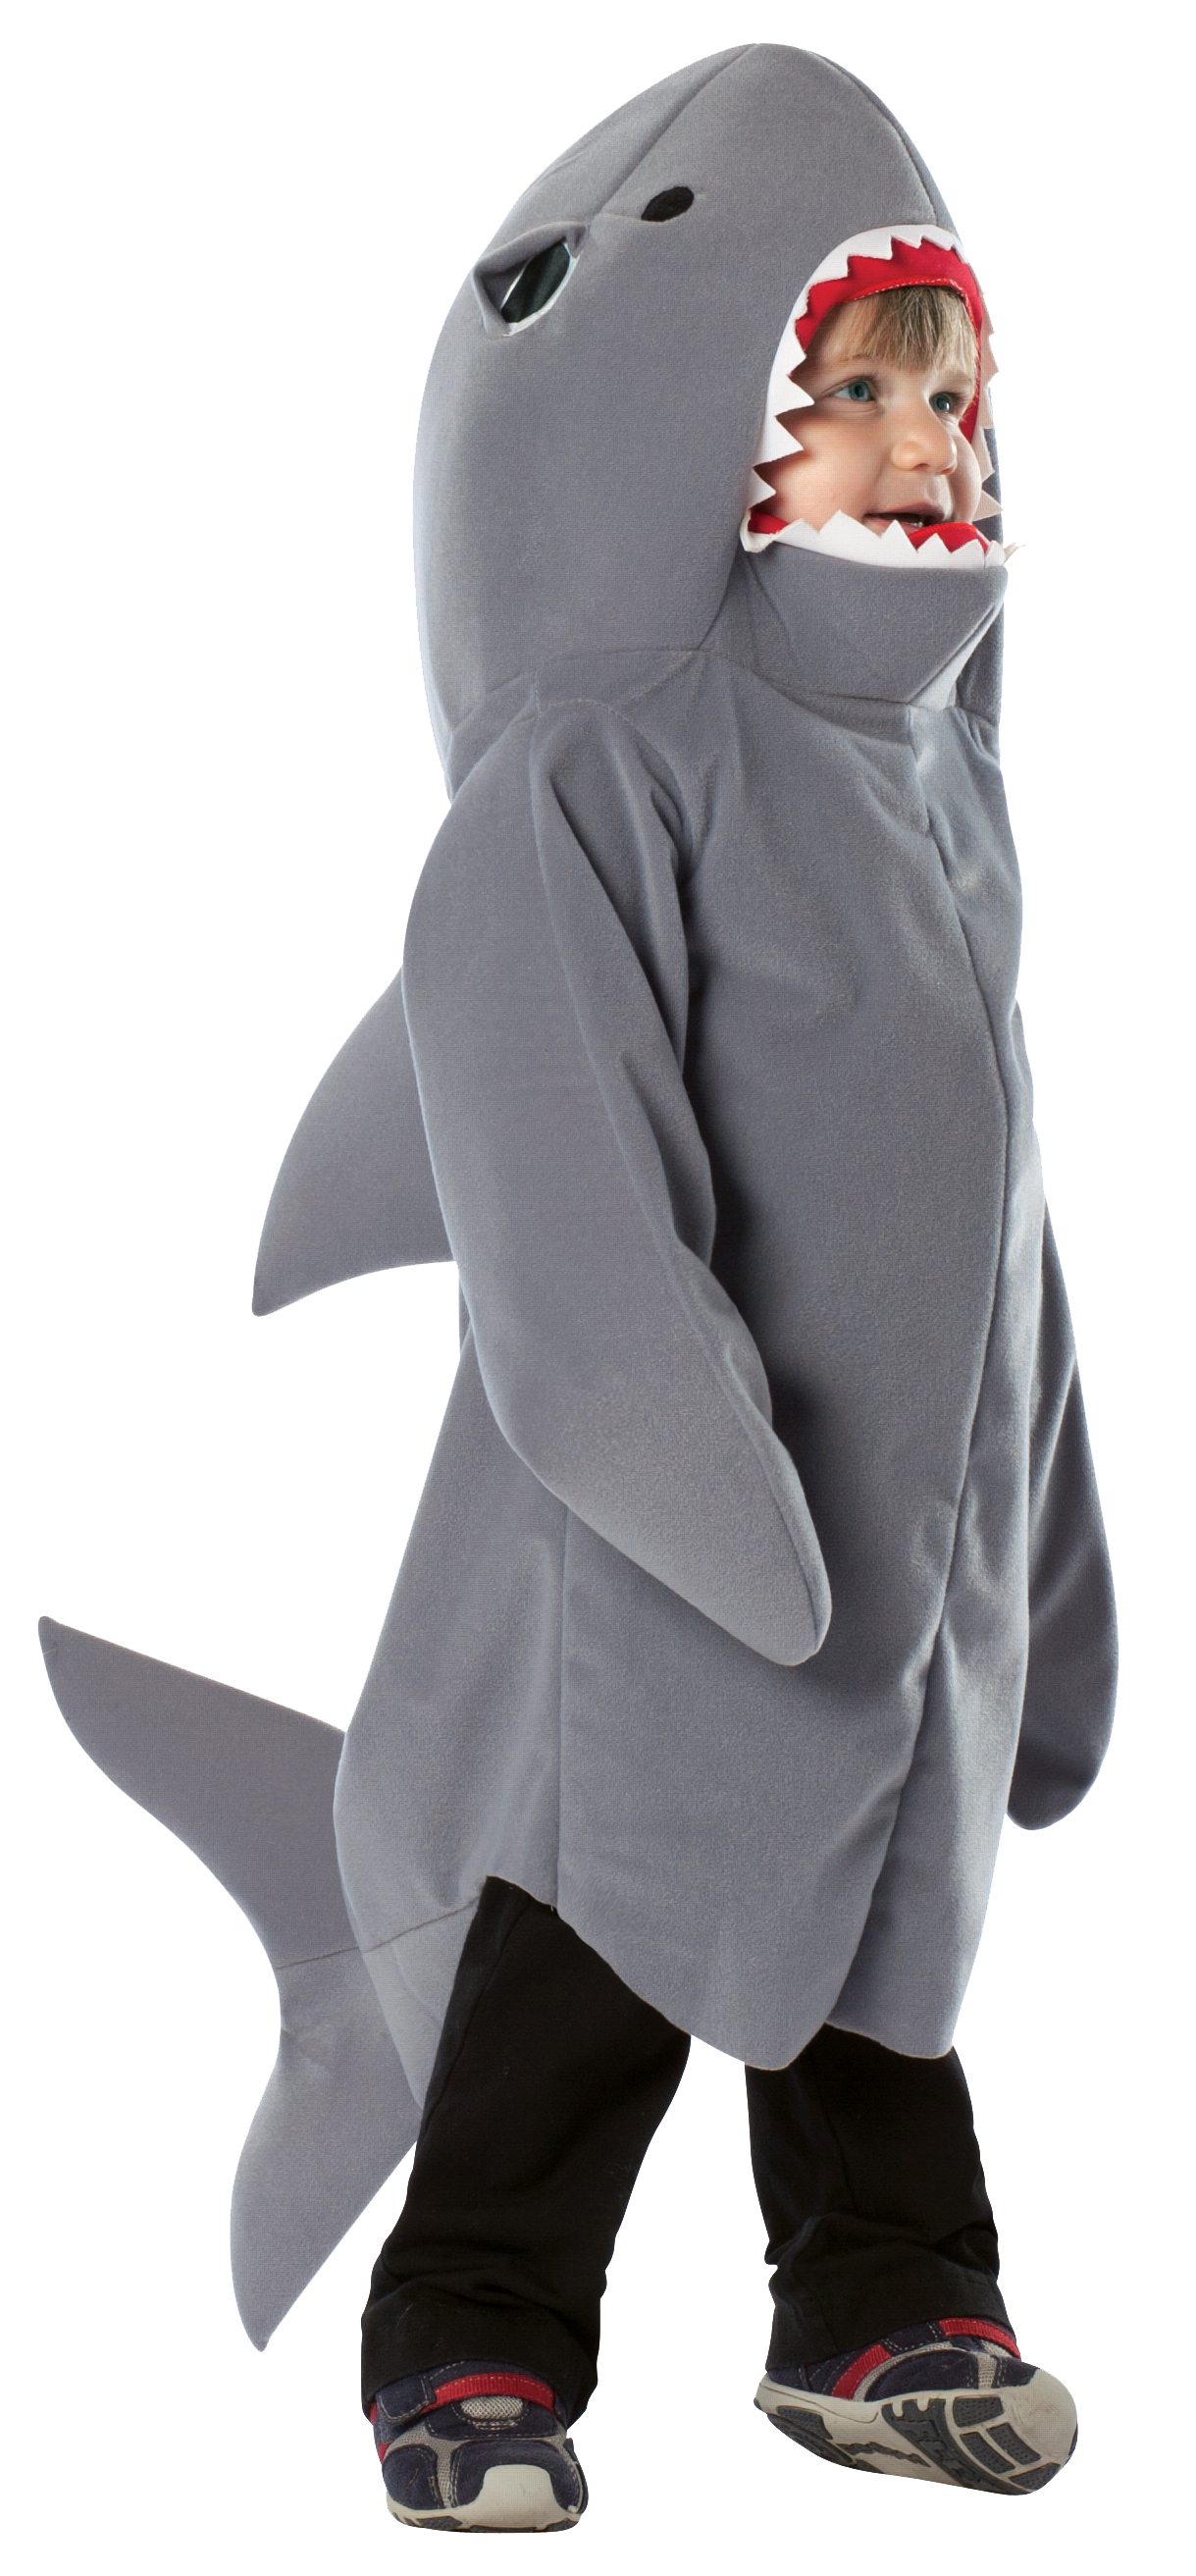 Kidsu0027 Shark Animal Costume  sc 1 st  Mega Fancy Dress & Kidsu0027 Shark Animal Costume | TV Book and Film Costumes | Mega Fancy ...